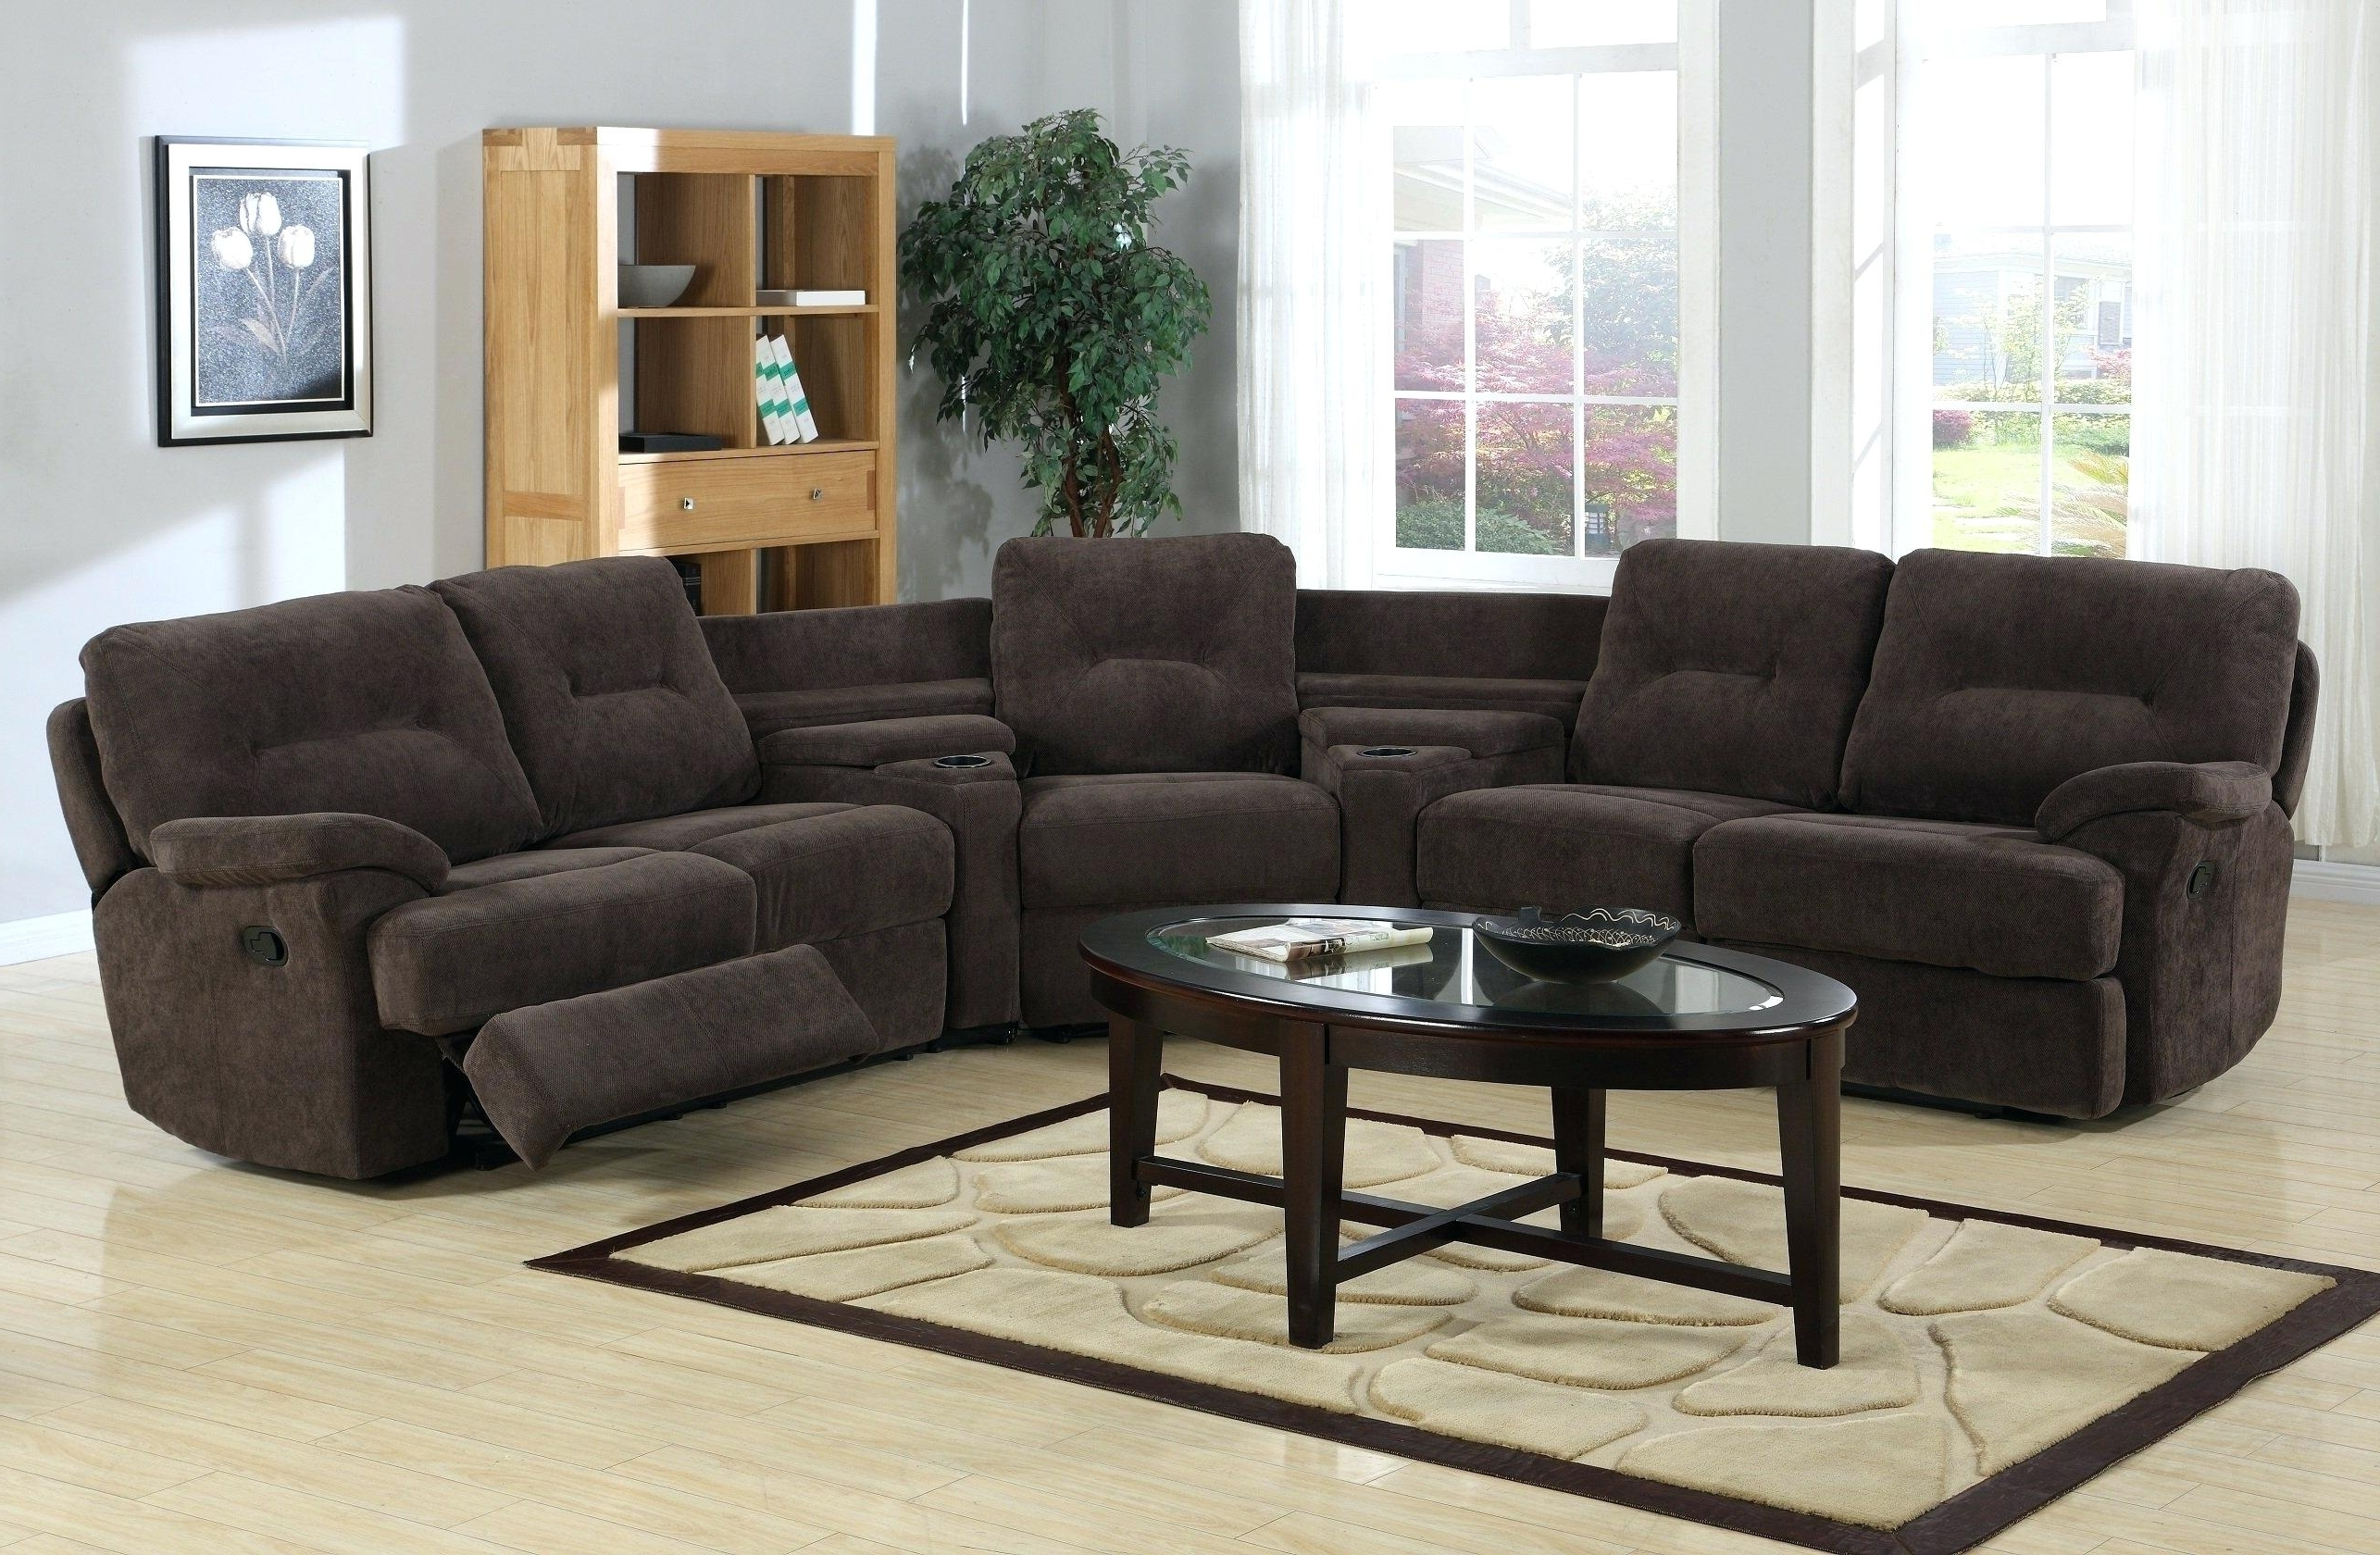 Curved Sectional Couch Round Sofa Slipcover Canada Sofas At Macys Throughout Newest Round Sofas (View 3 of 20)